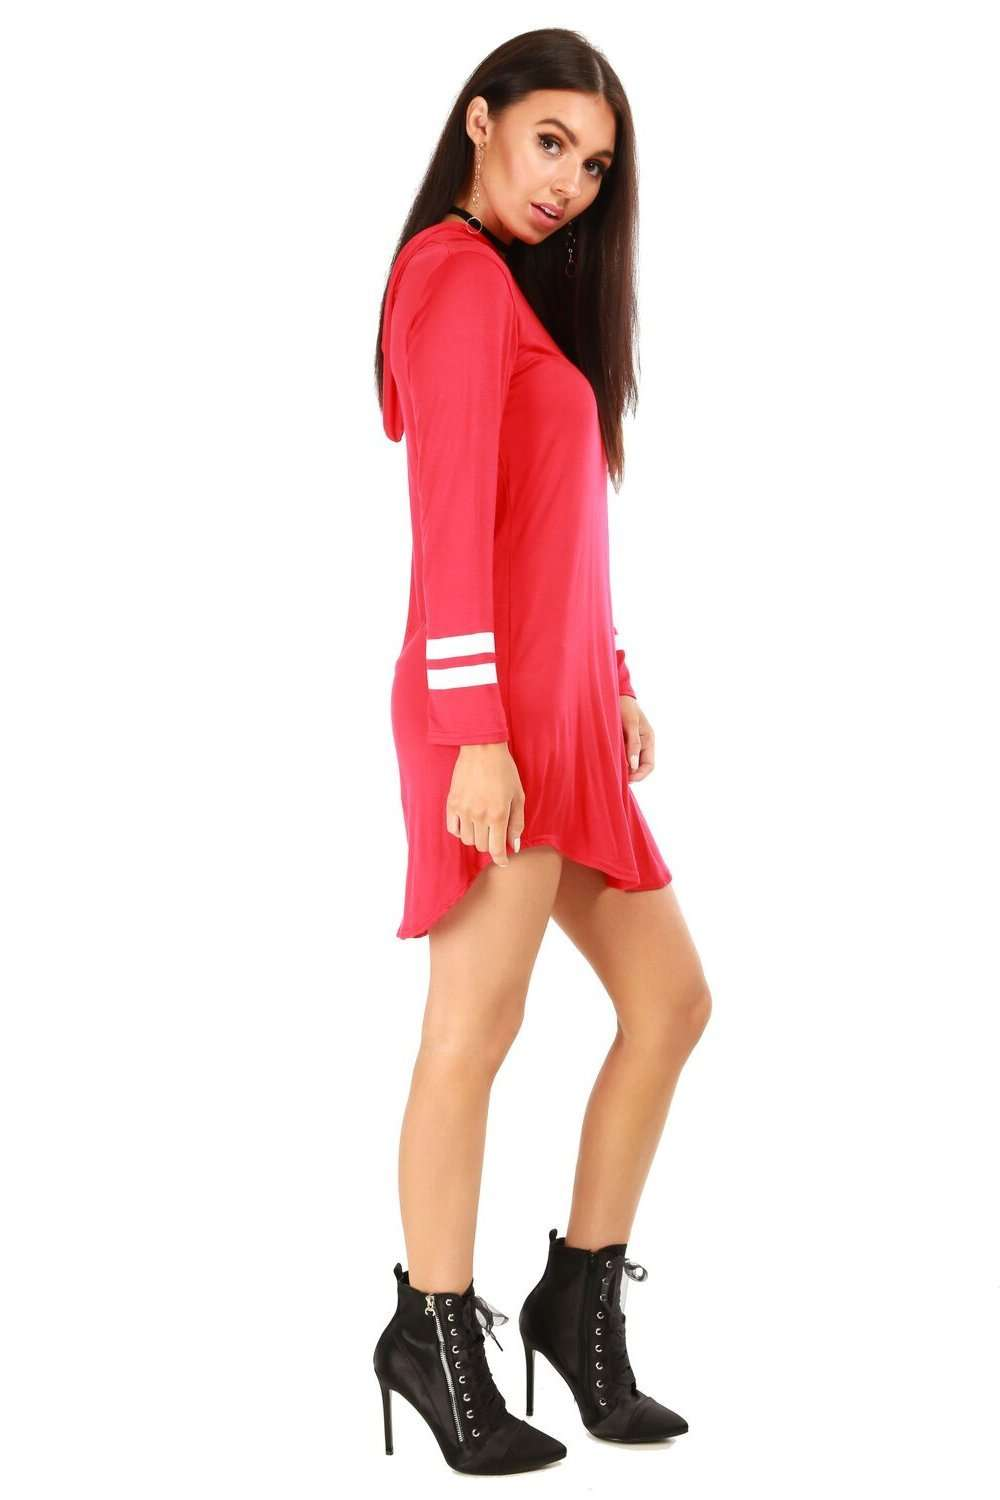 Alaskia Striped Sleeve Hooded Tshirt Dress - bejealous-com